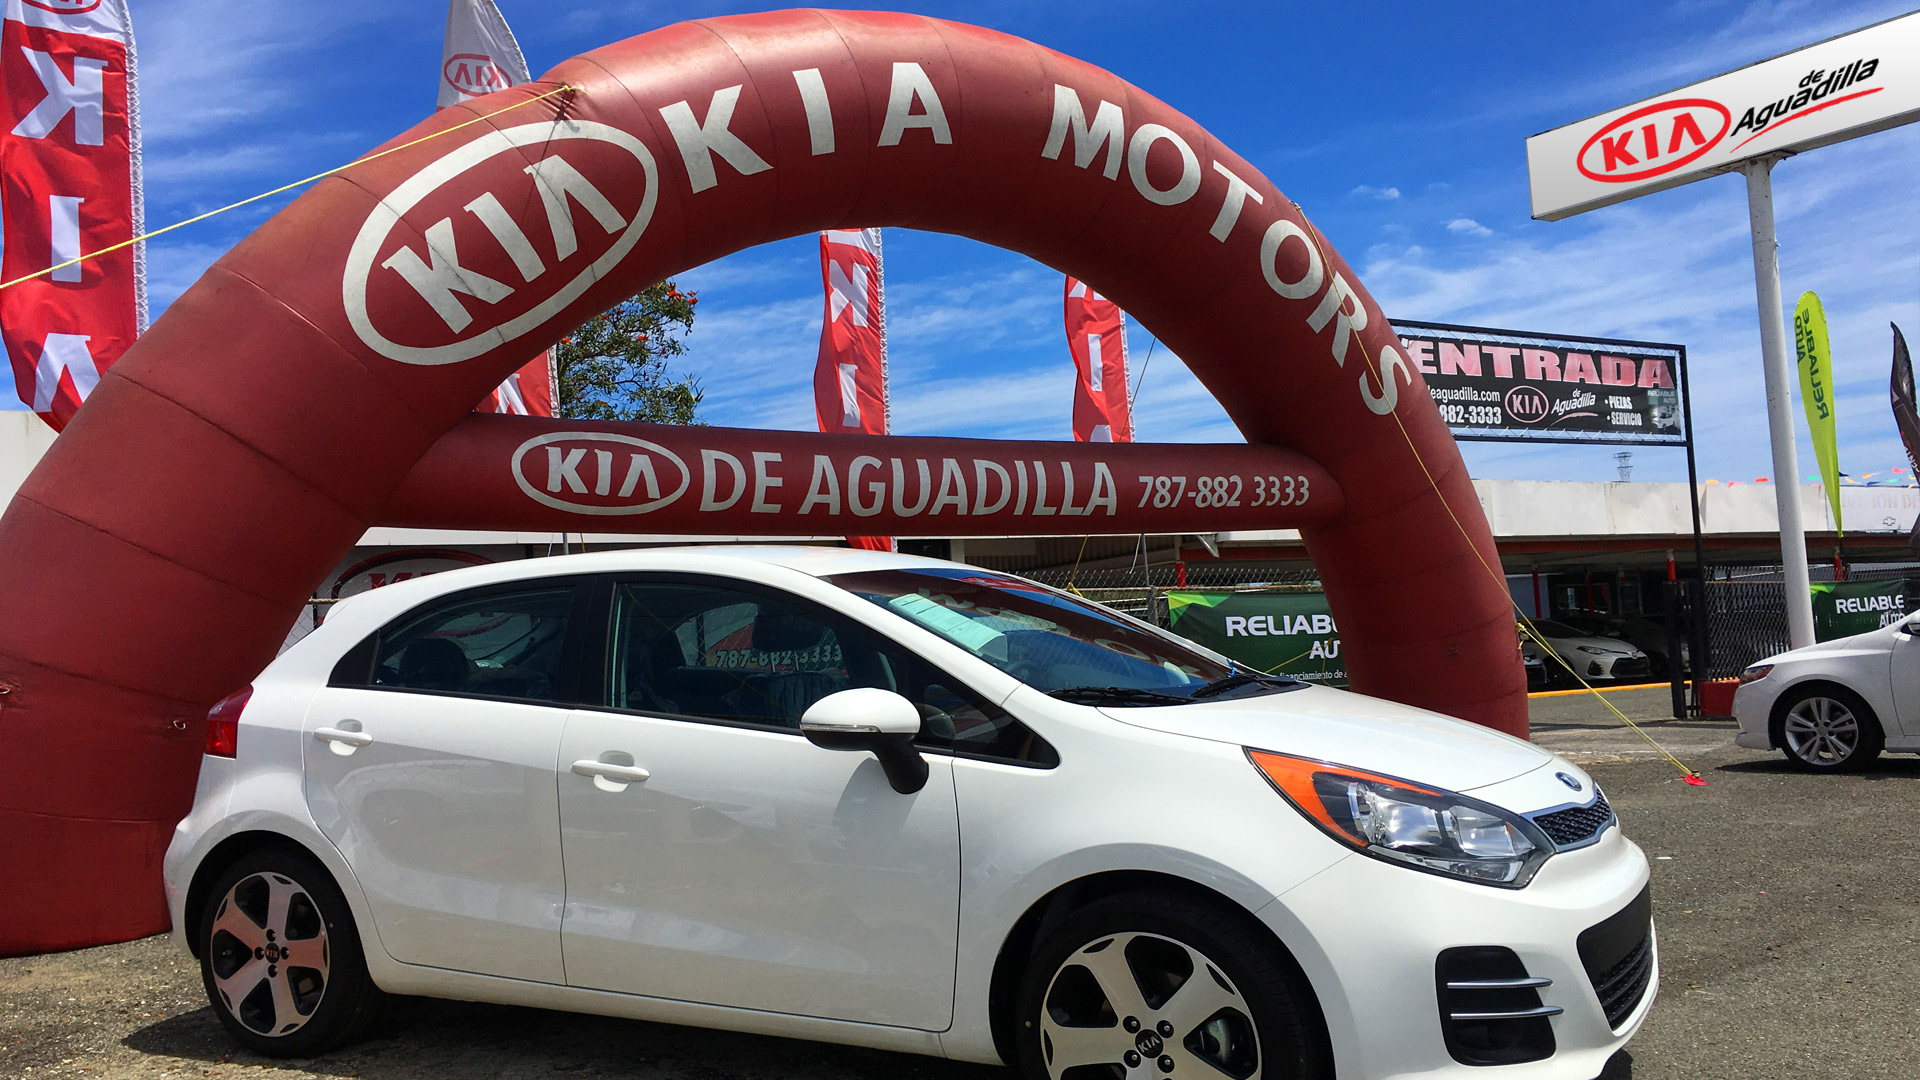 reviews store clarksville sedona rodriguez javier in by of image new m brochure kia car